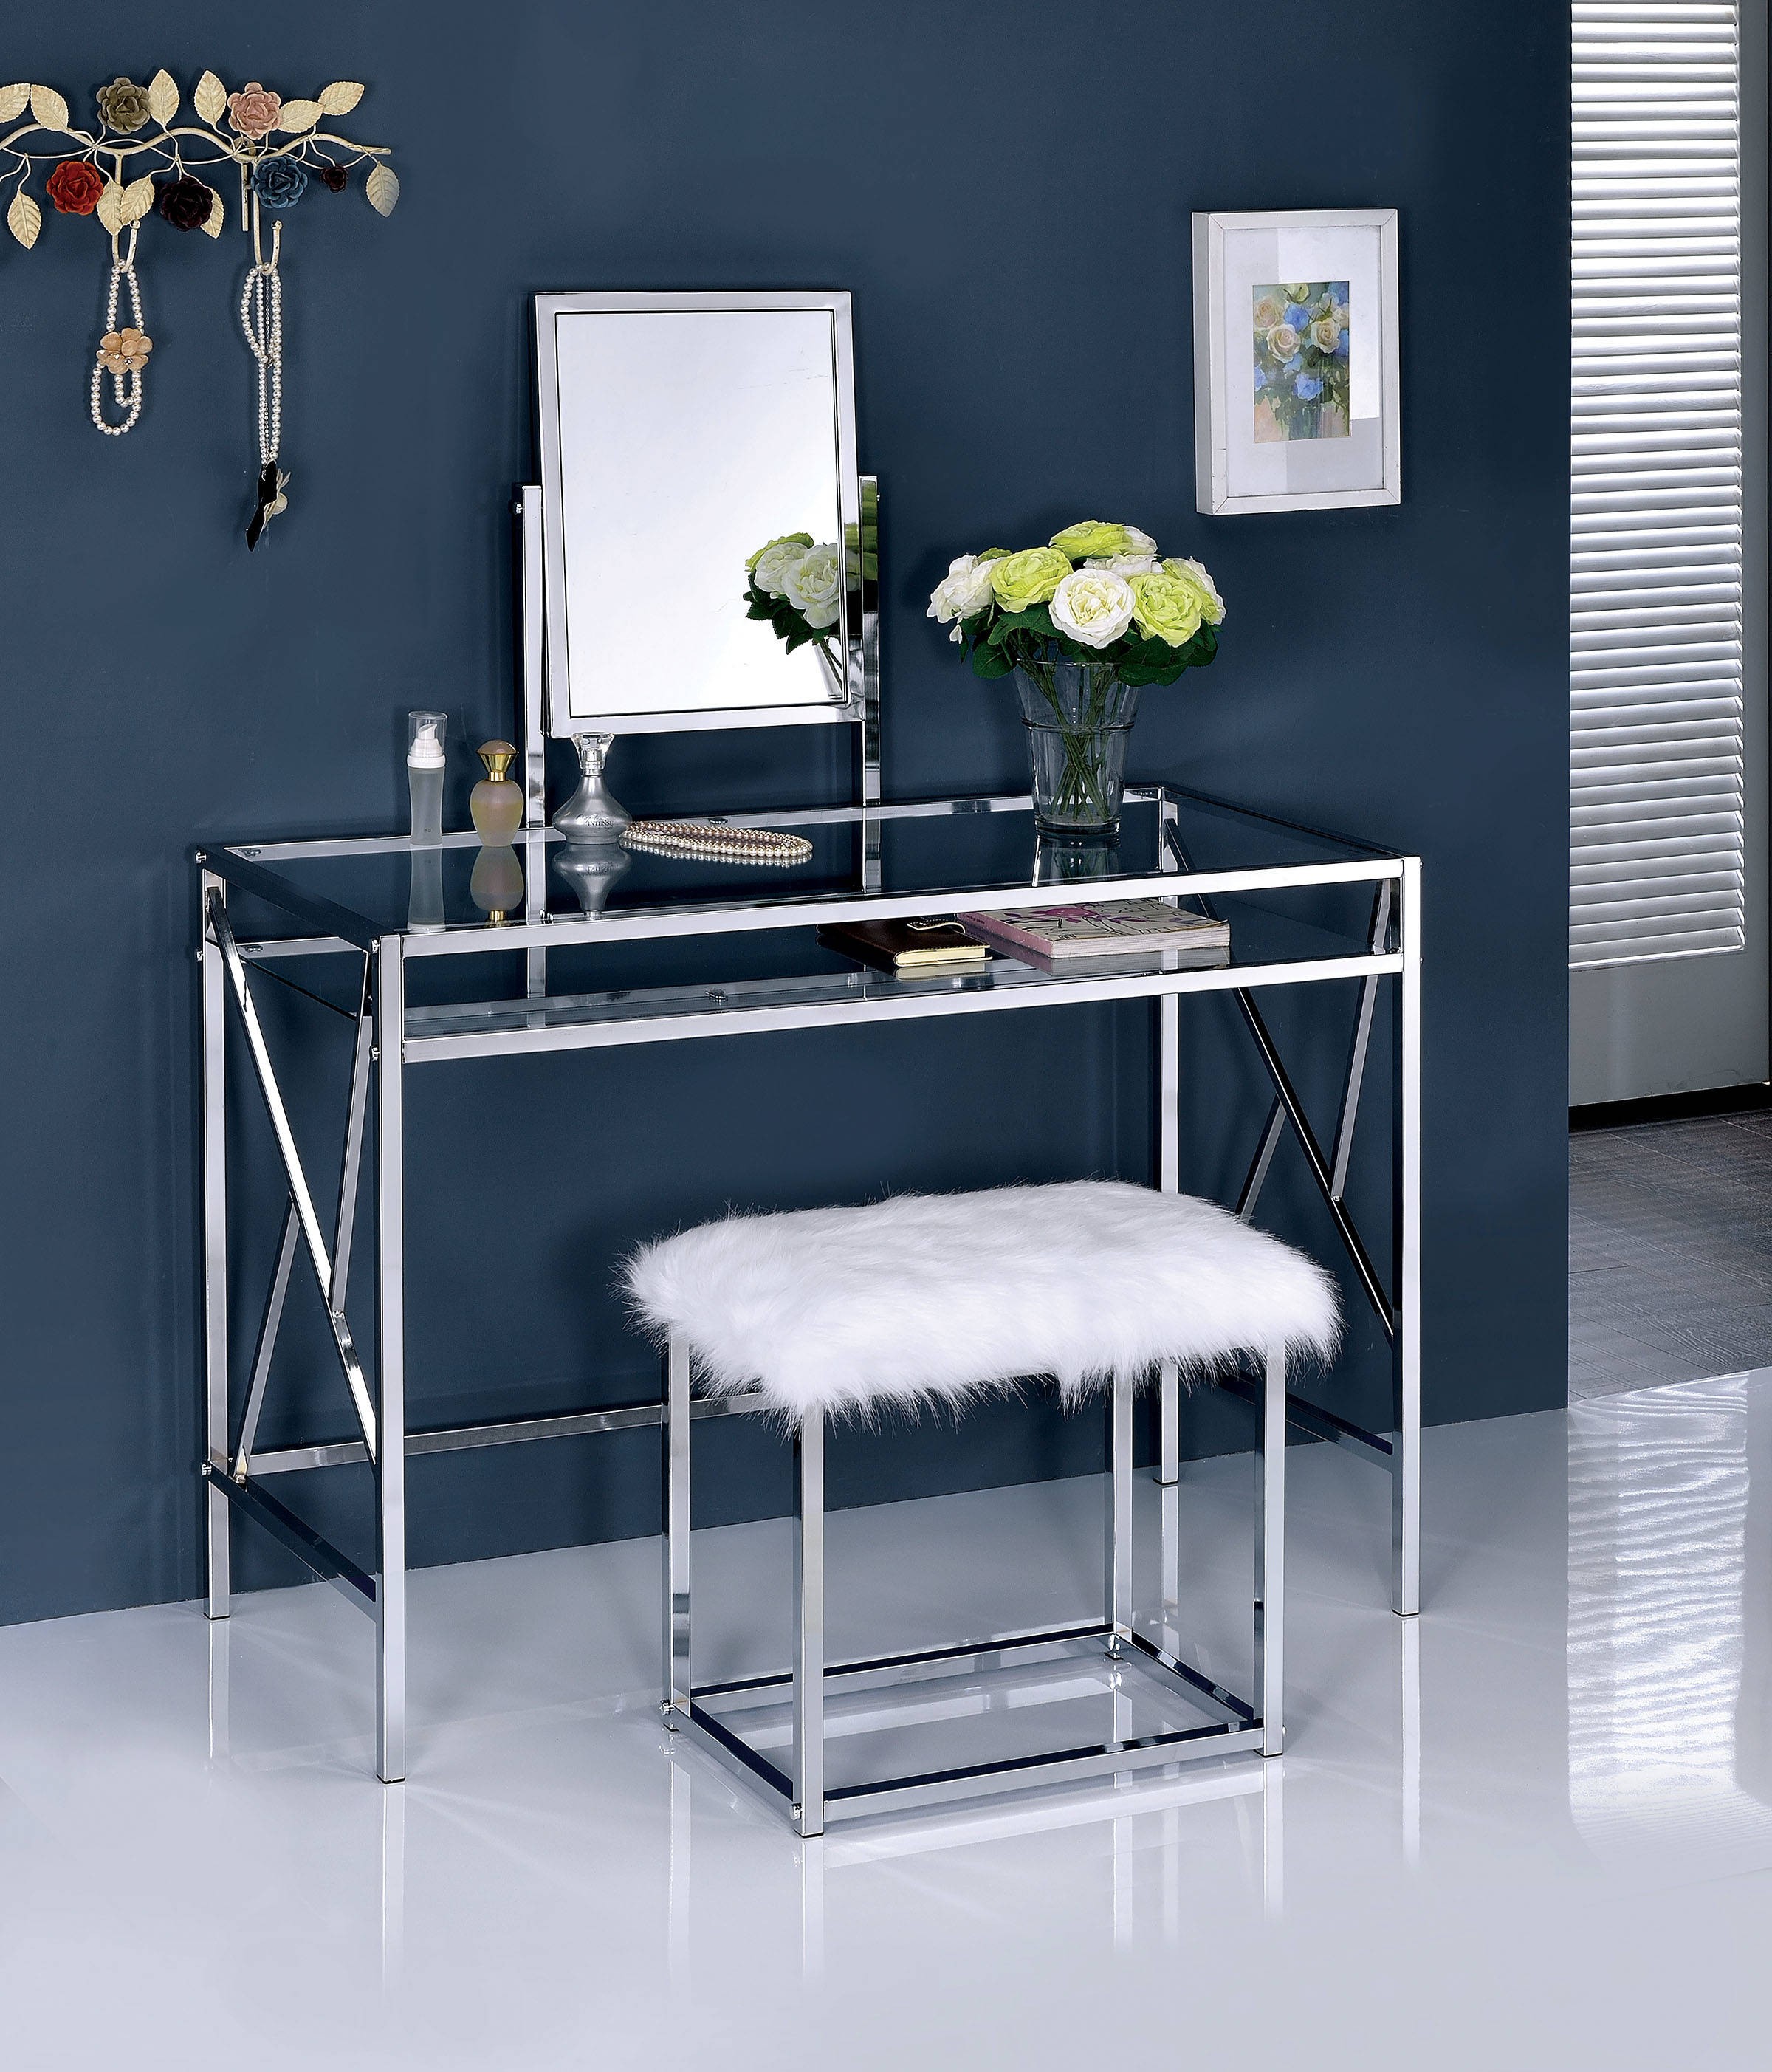 Furniture of America Lismore Chrome Vanity with Stool | The Classy Home